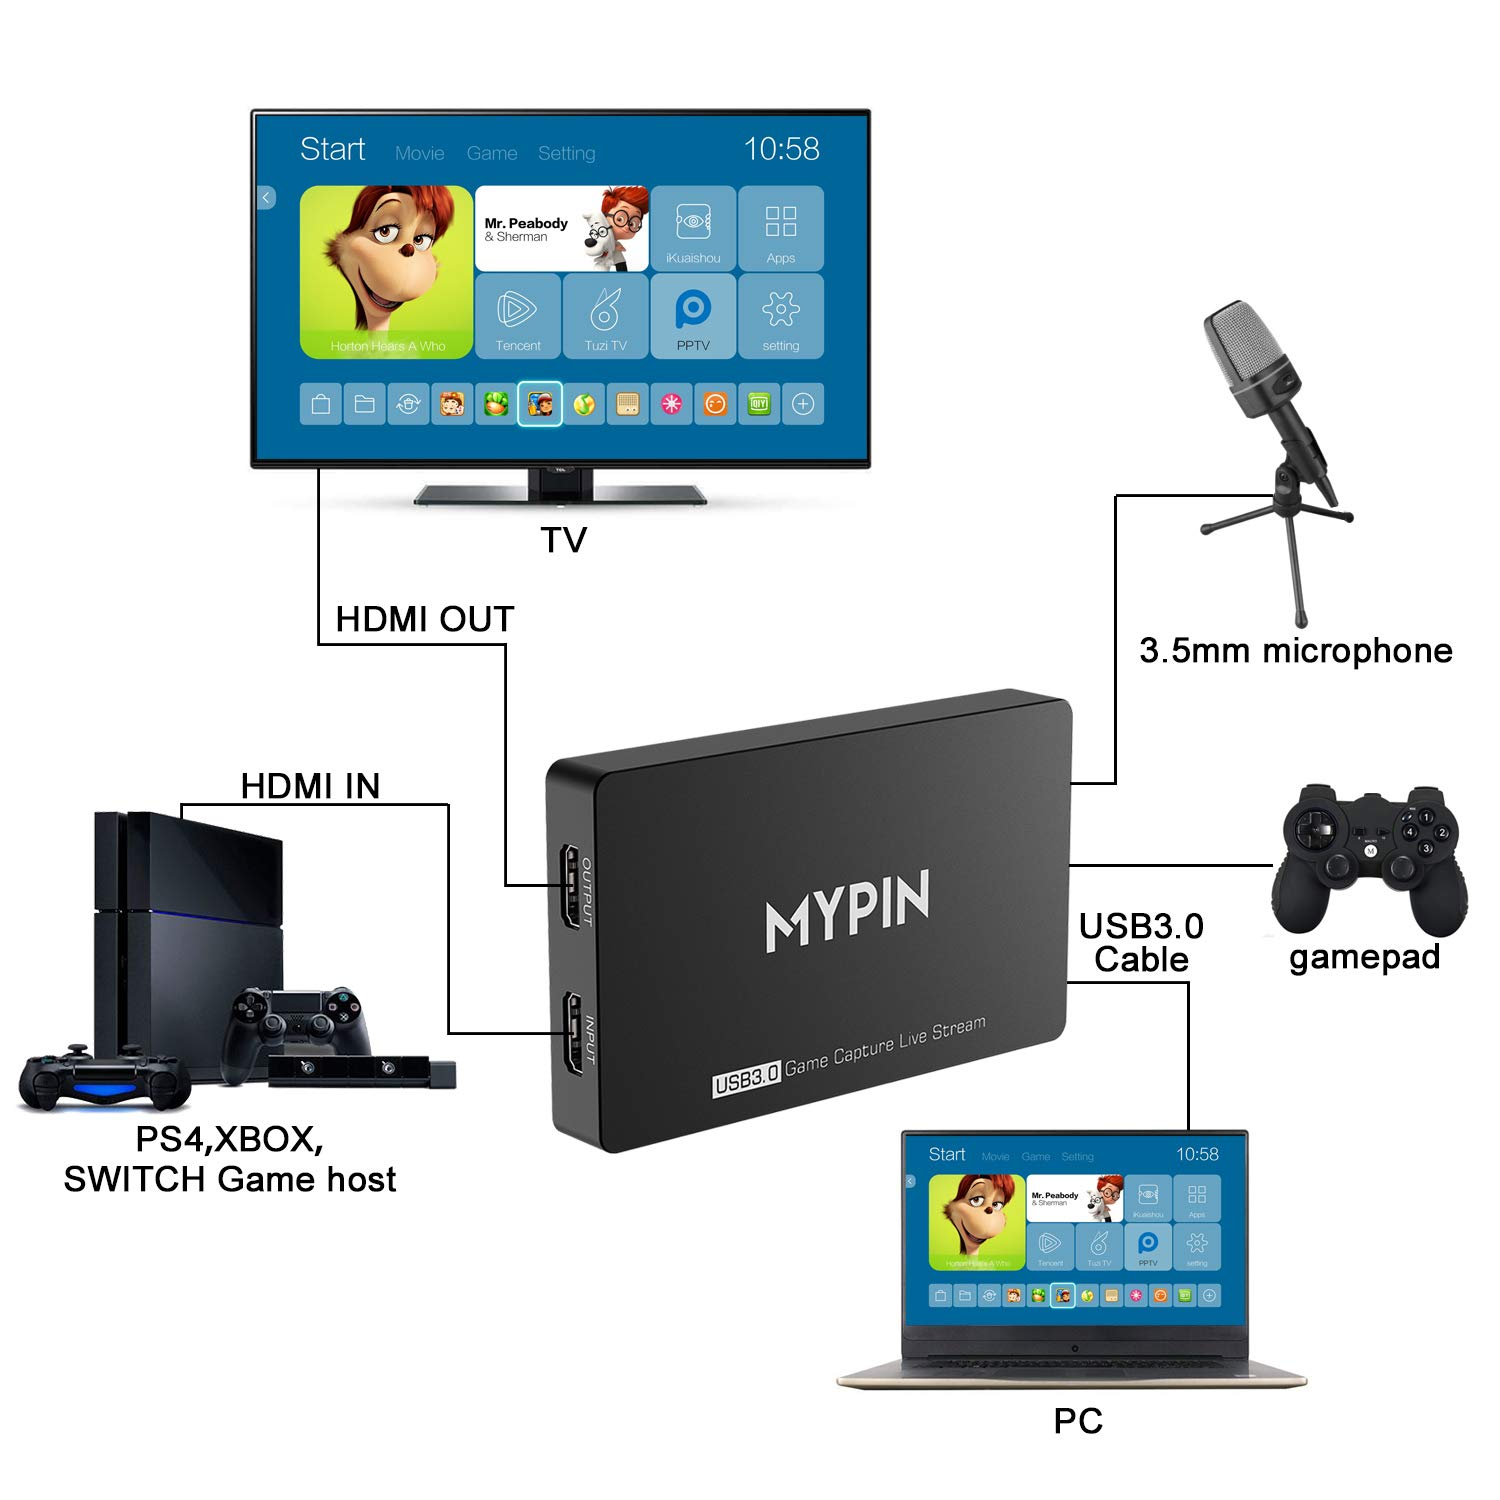 Mic-in Video Recorder Compatible with Xbox 360//One// PS3 //PS4 etc 1080P Game Video Capture Card with HDMI and YpbPr Input